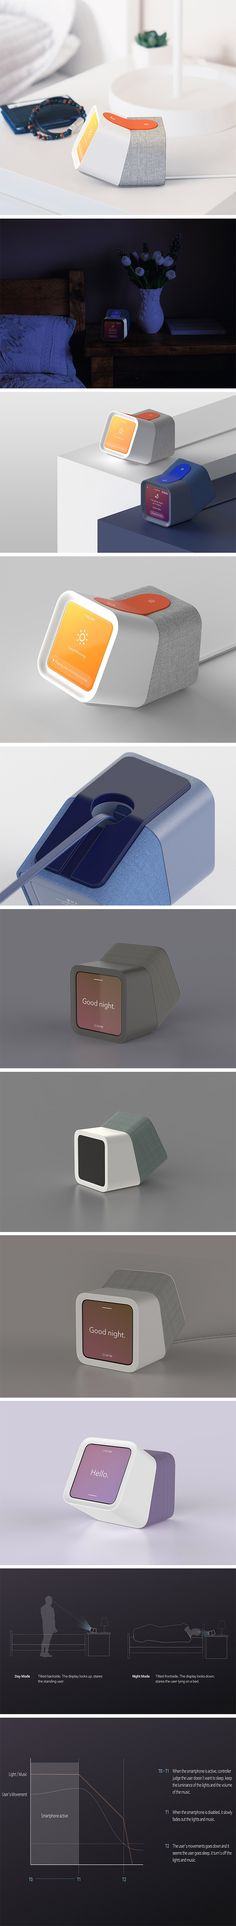 This alarm clock design by Hojung Cha is as smart as it is cute! Designed like a switch, it makes it possible to control your alarm clock in one simple motion. Just as you would switch off a light, tilt the unit back to deactivate the alarm. This unique positioning also makes it ideal for viewing. When the alarm is off, it positions the face in such a way that it's easy to read when standing. When it's activated, the face is easier to read when laying down!